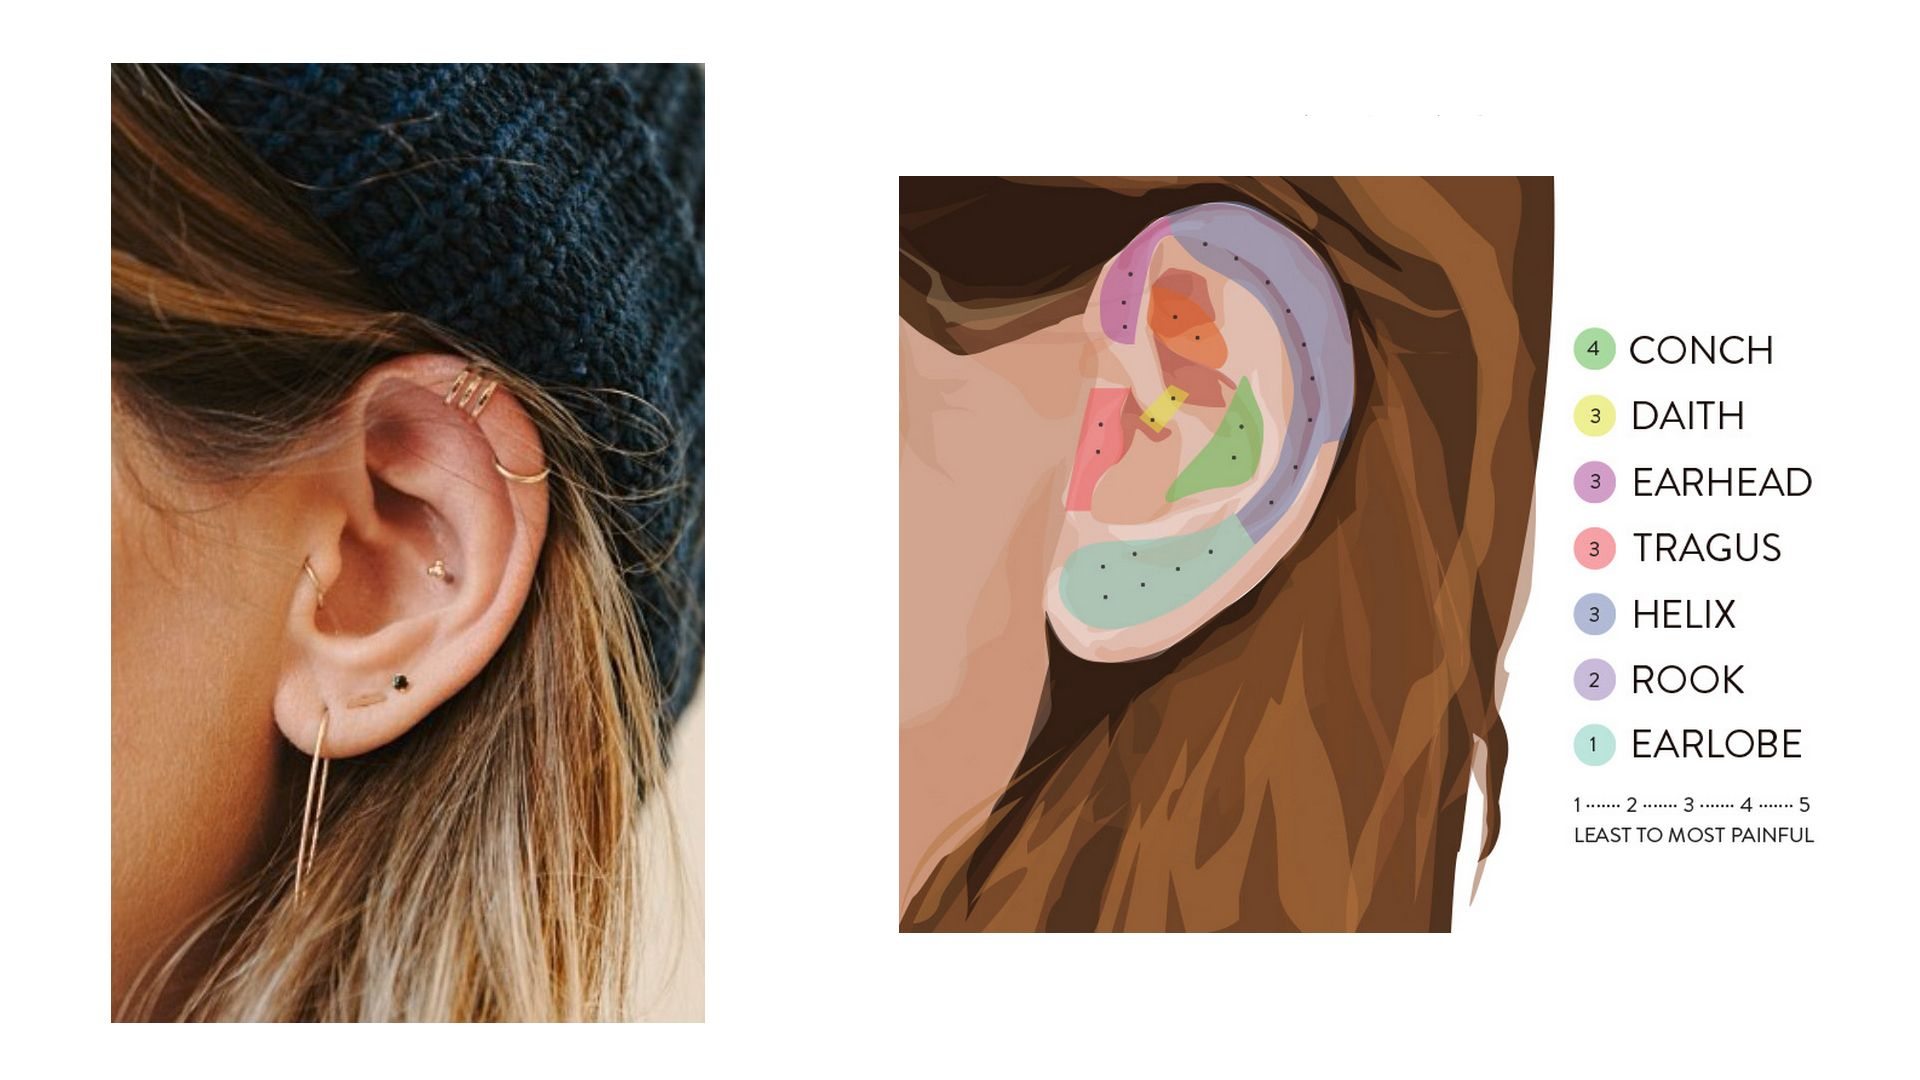 Names of different ear piercings and pain levels lee renee jewellery also rh pinterest